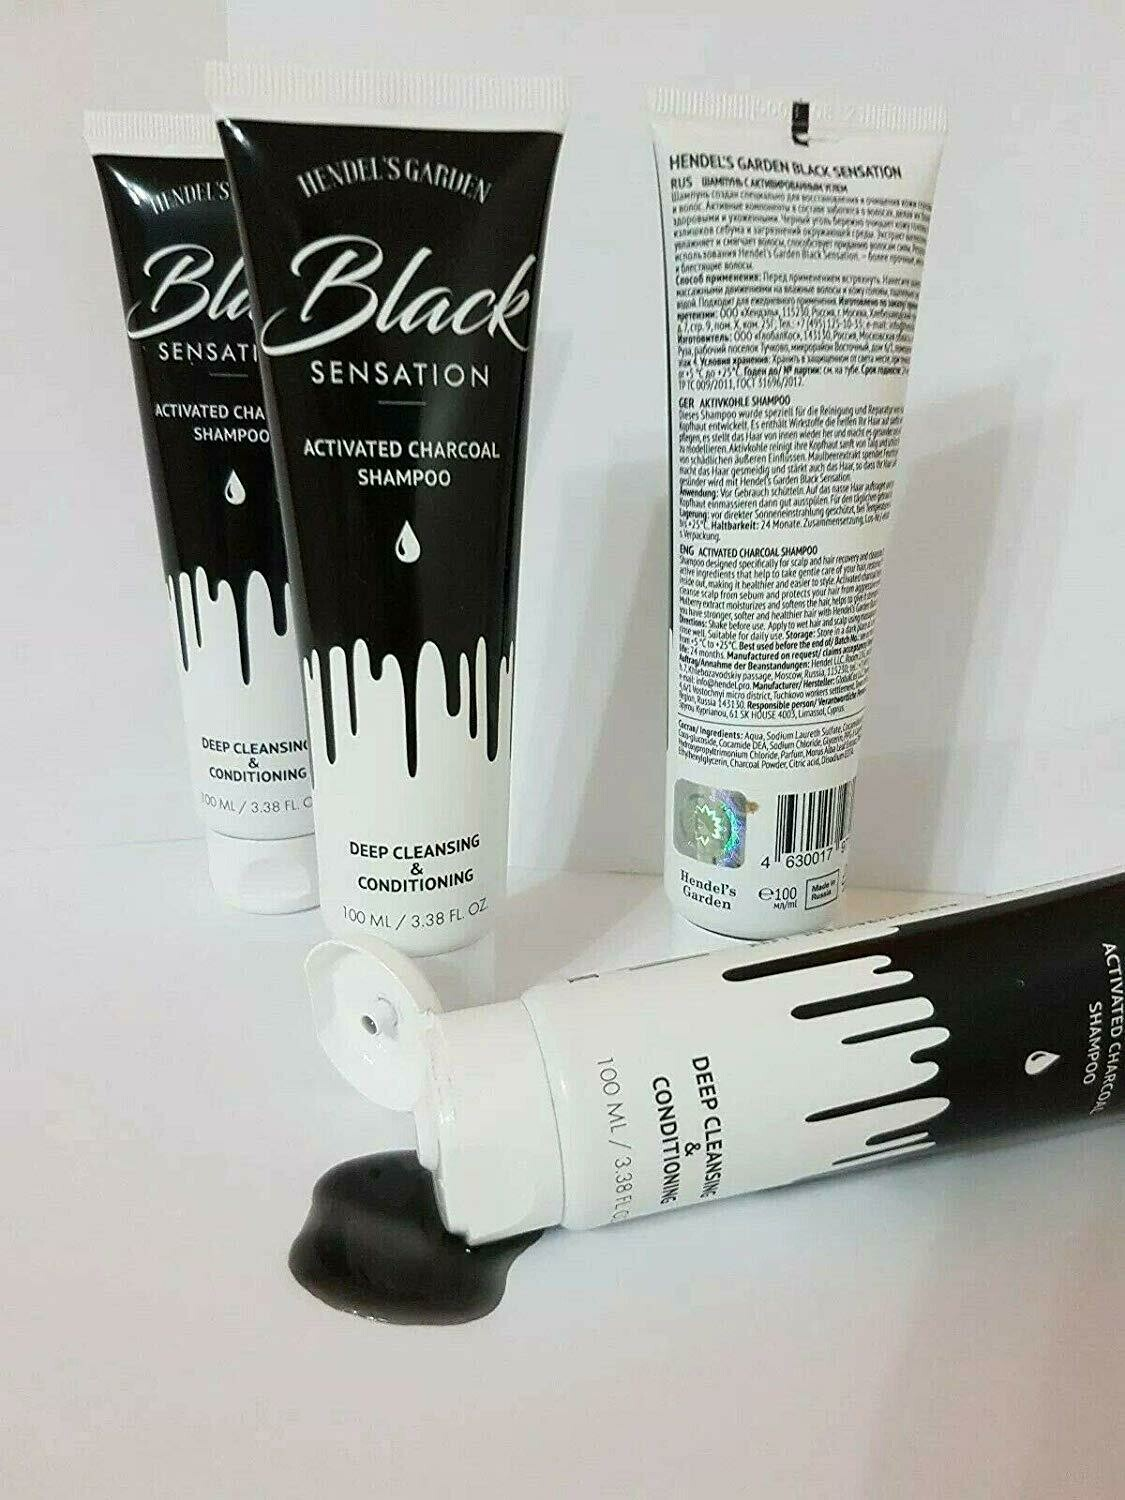 Black Sensation - Activated Charcoal Shampoo for Oily Hair